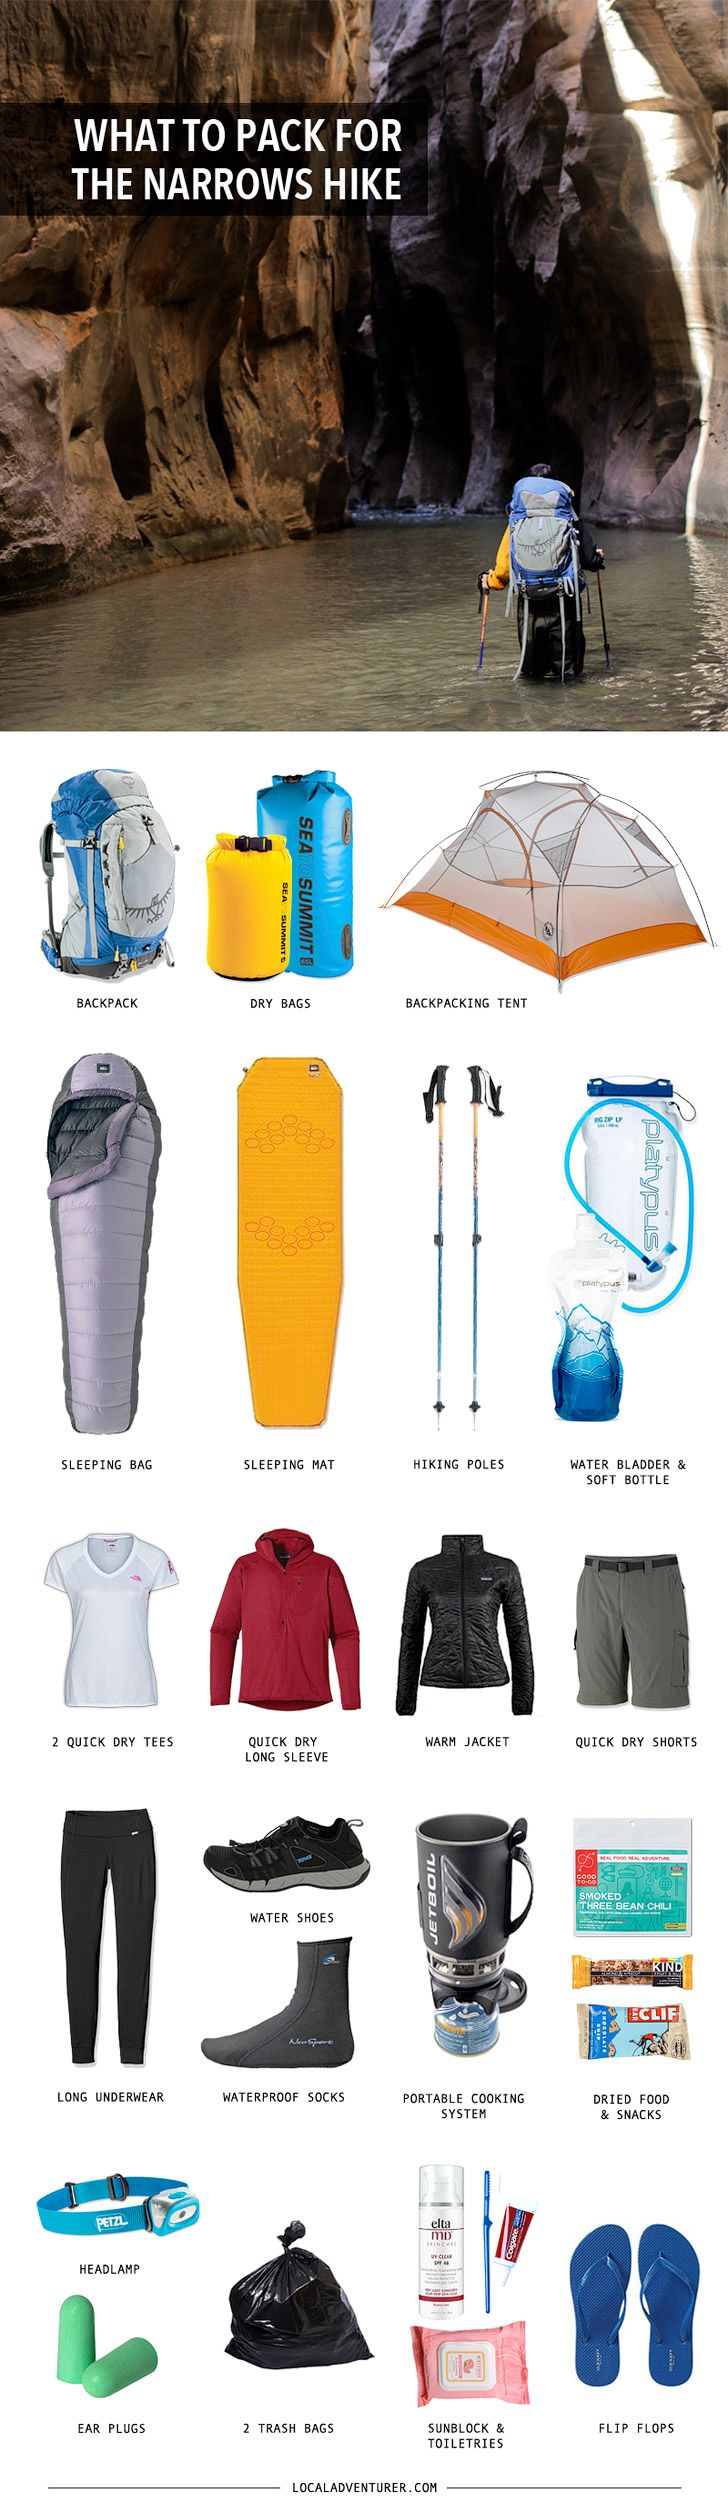 Backpacking Gear List for the Zion Narrows Hike Top Down. This list and tips are amazing!!!!